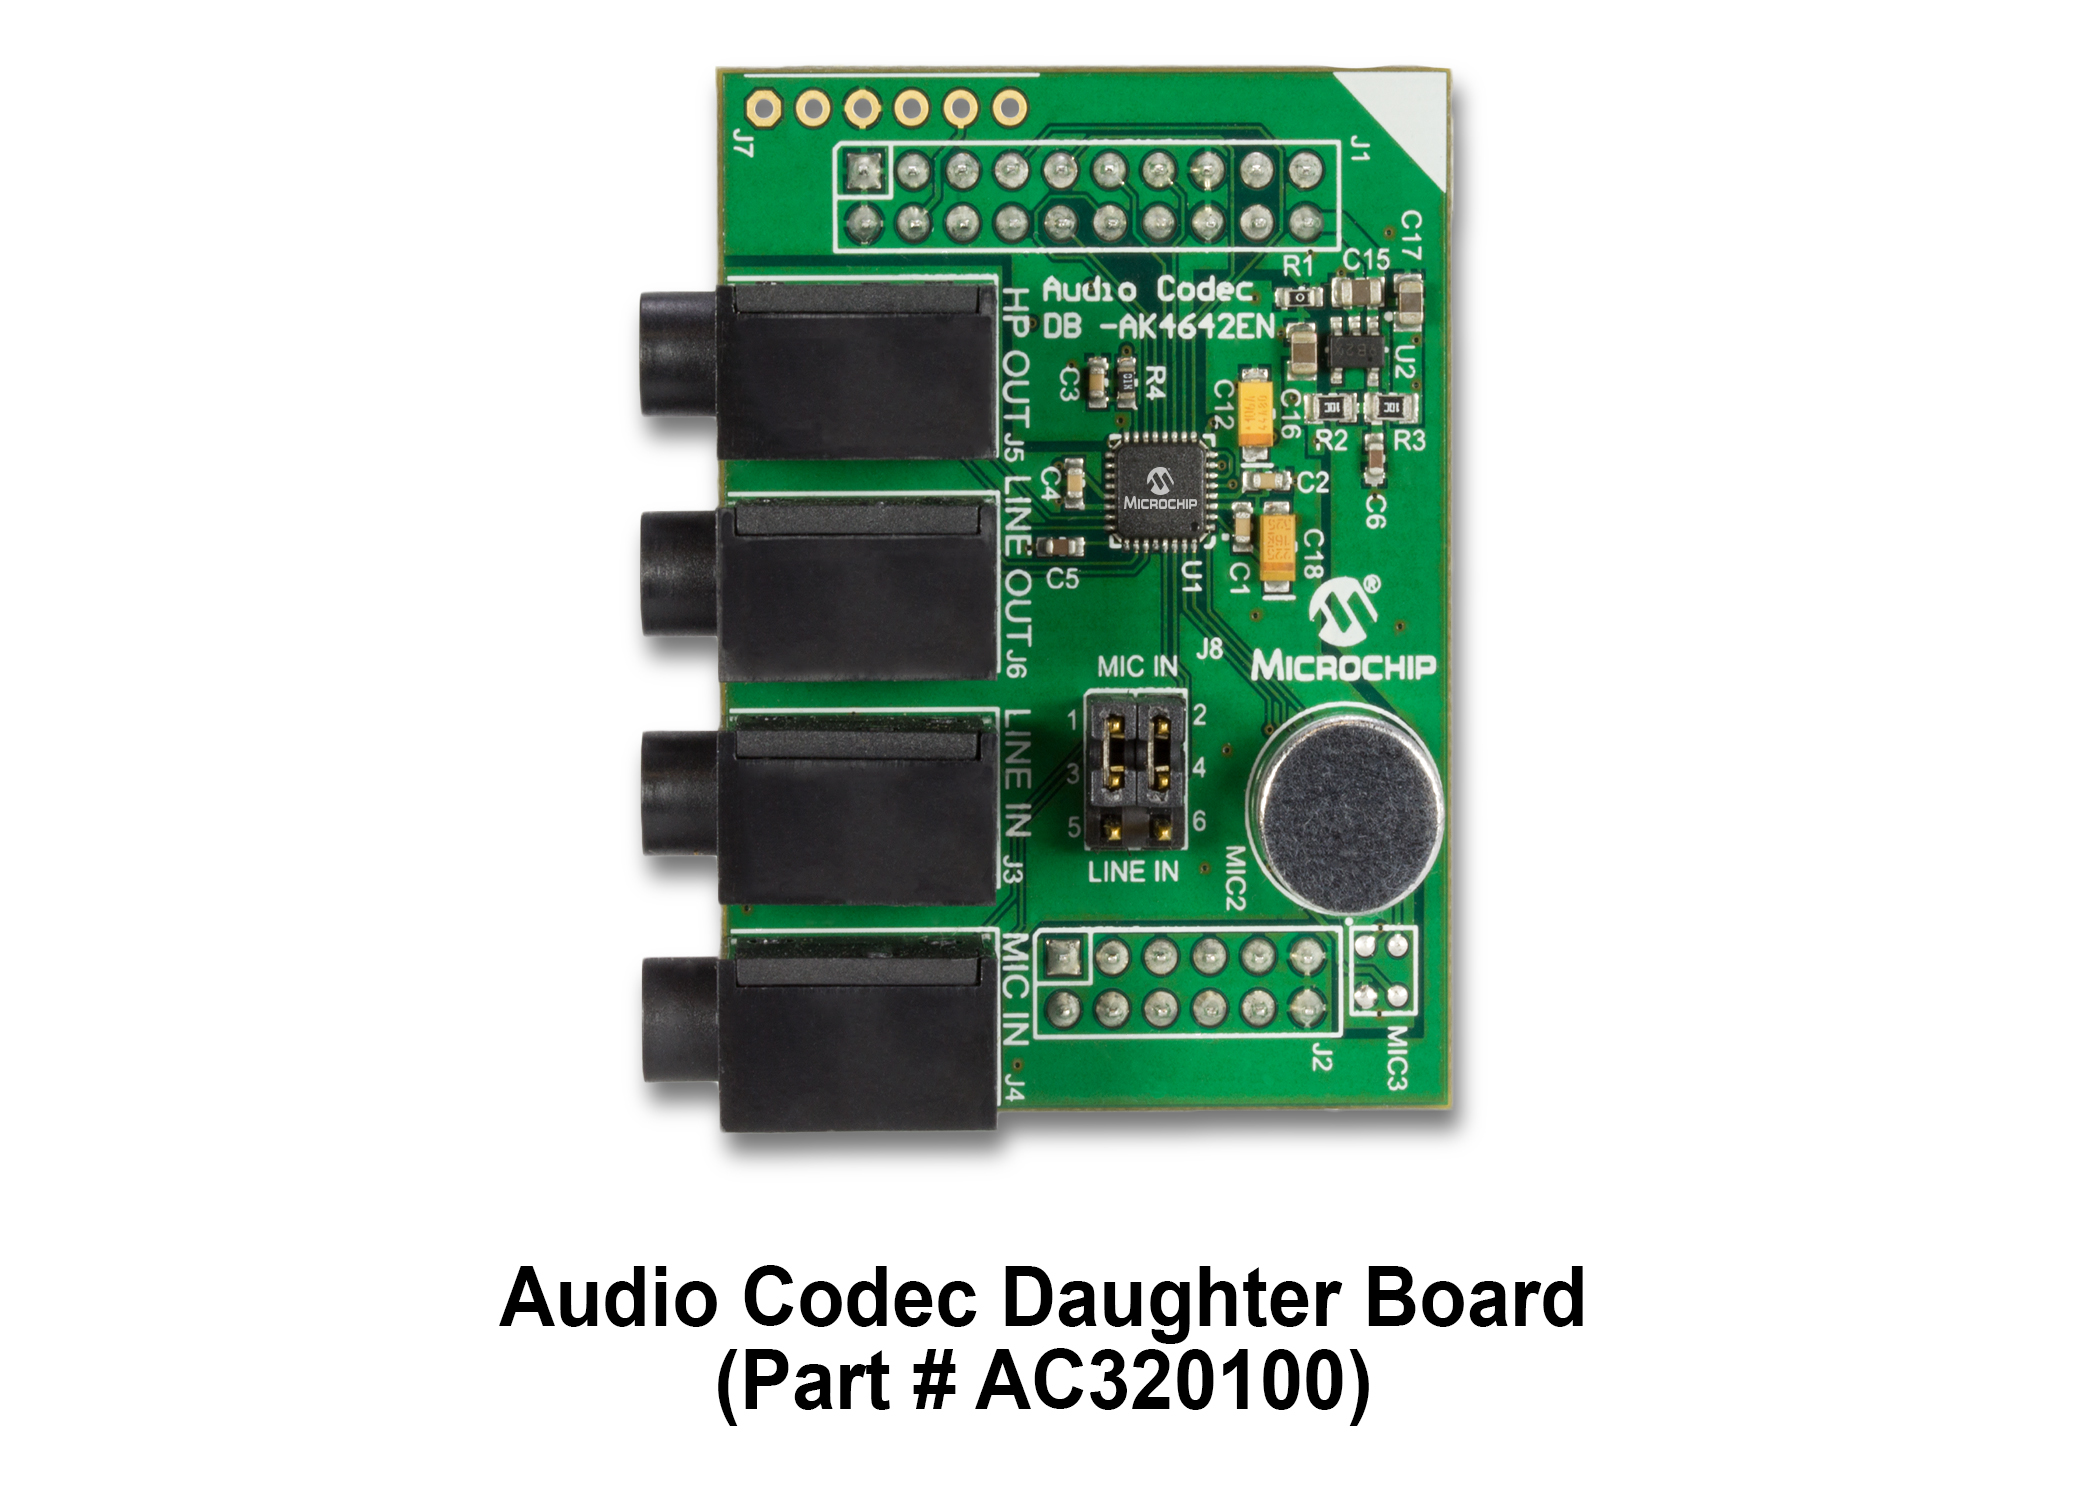 Development Tools Circuit Reviews Online Shopping On Dual Integrated Part Number Ac320100